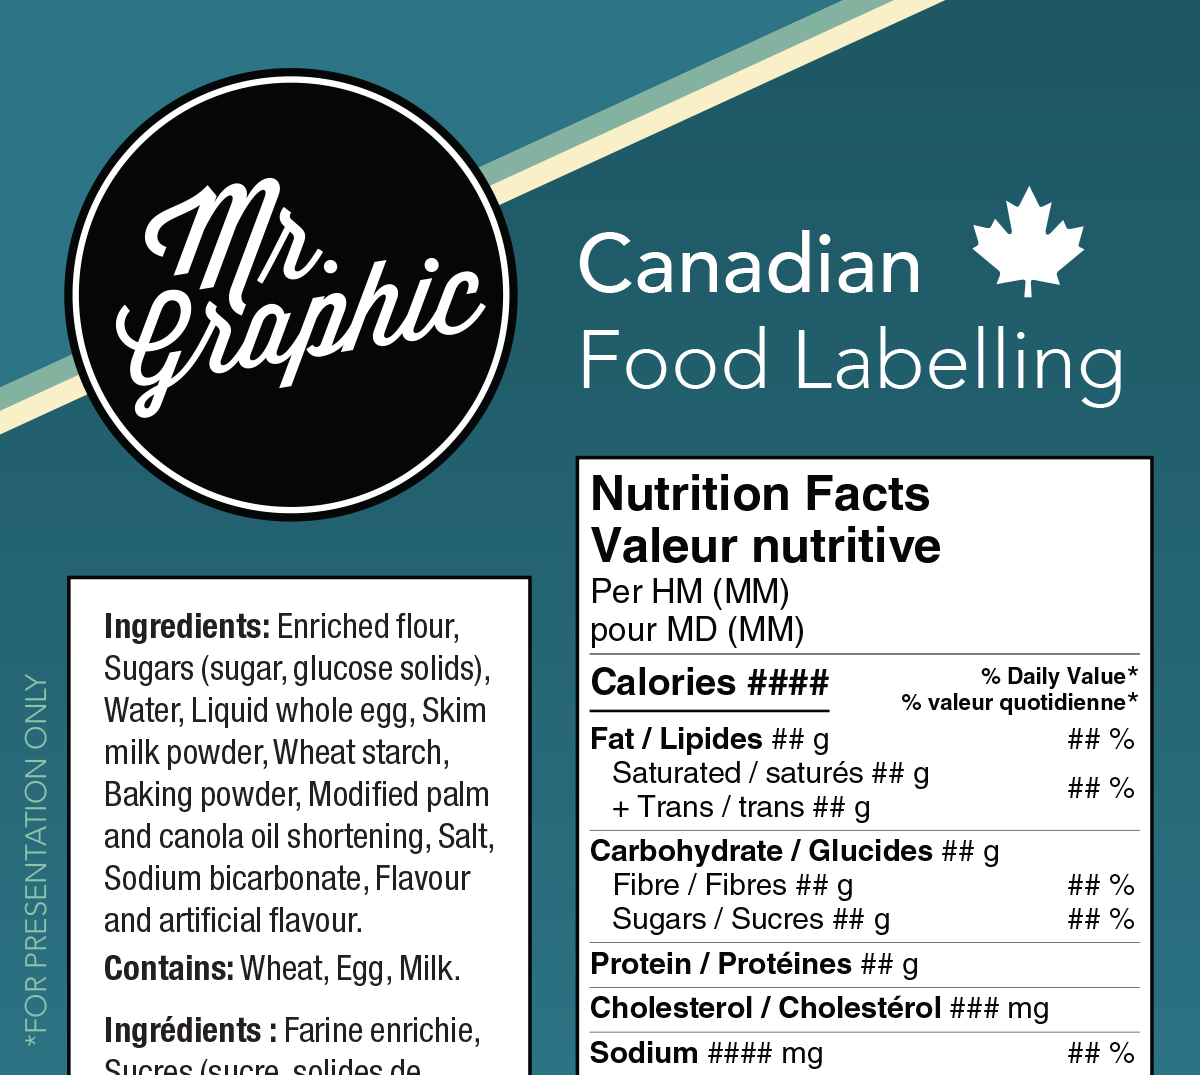 Canadian Food Labelling – Update